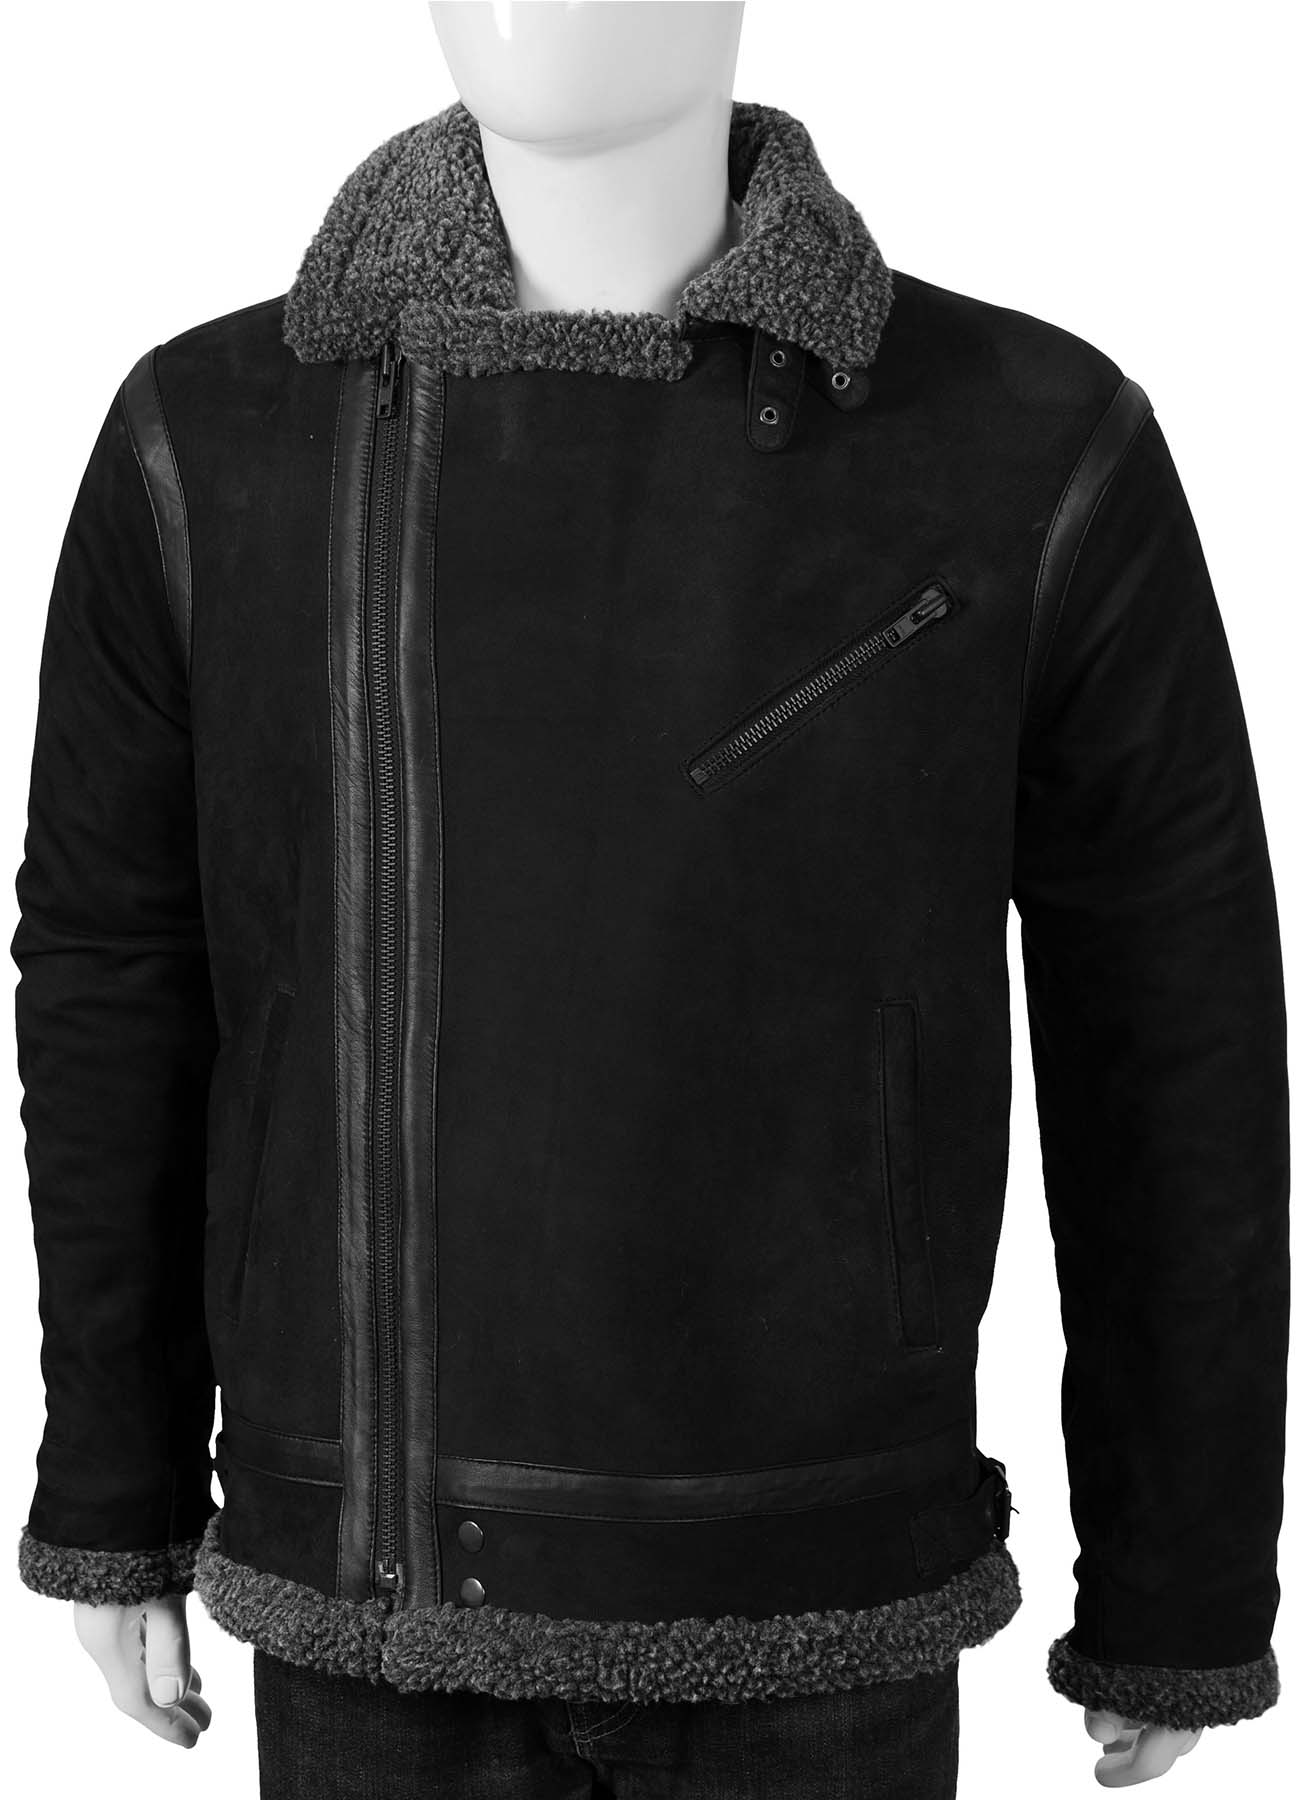 Black Suede Bomber Jacket With Dark Gray Shearling